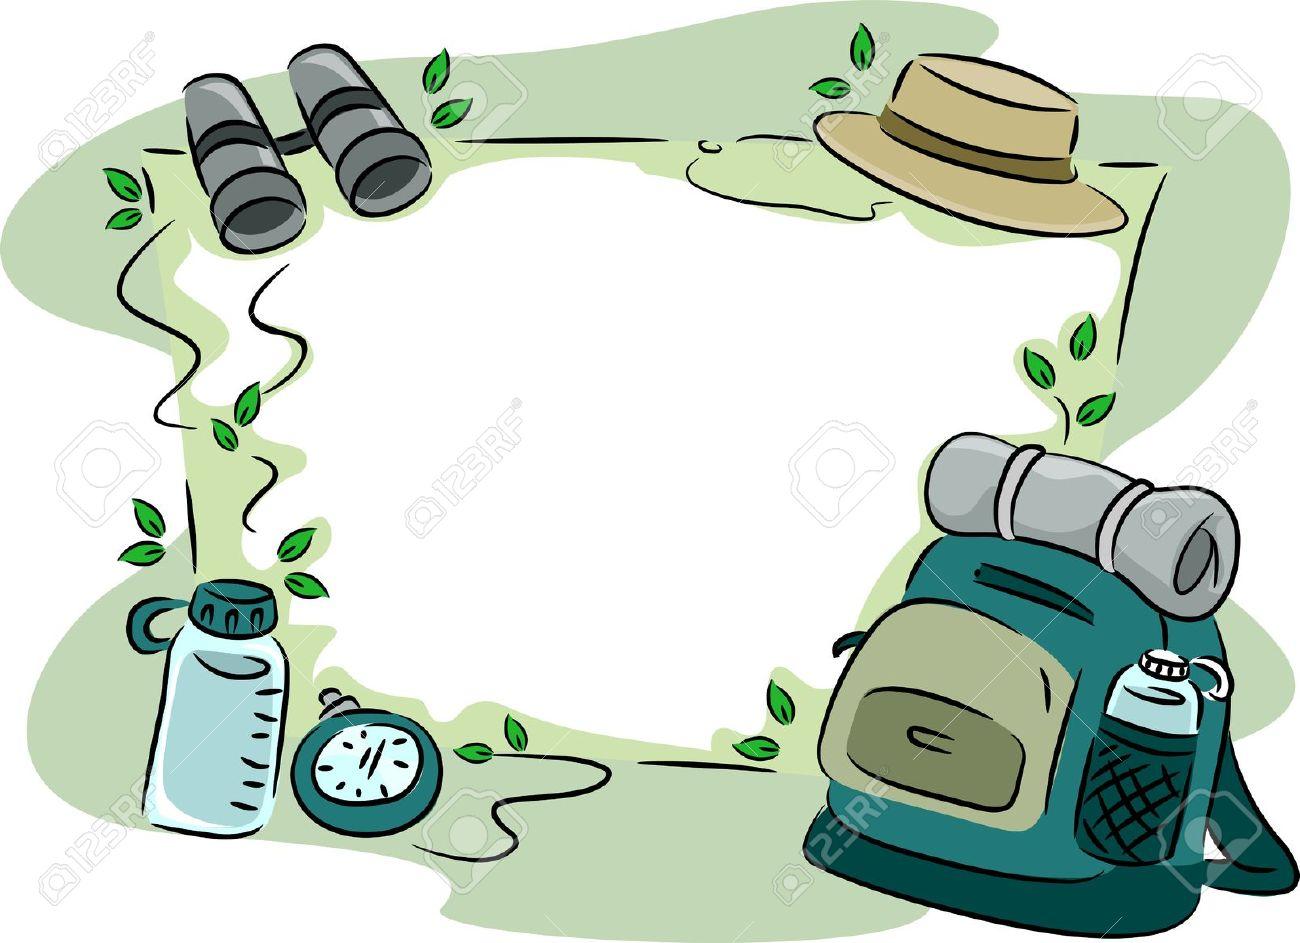 Background Illustration Featuring Camping Gear Stock Photo.